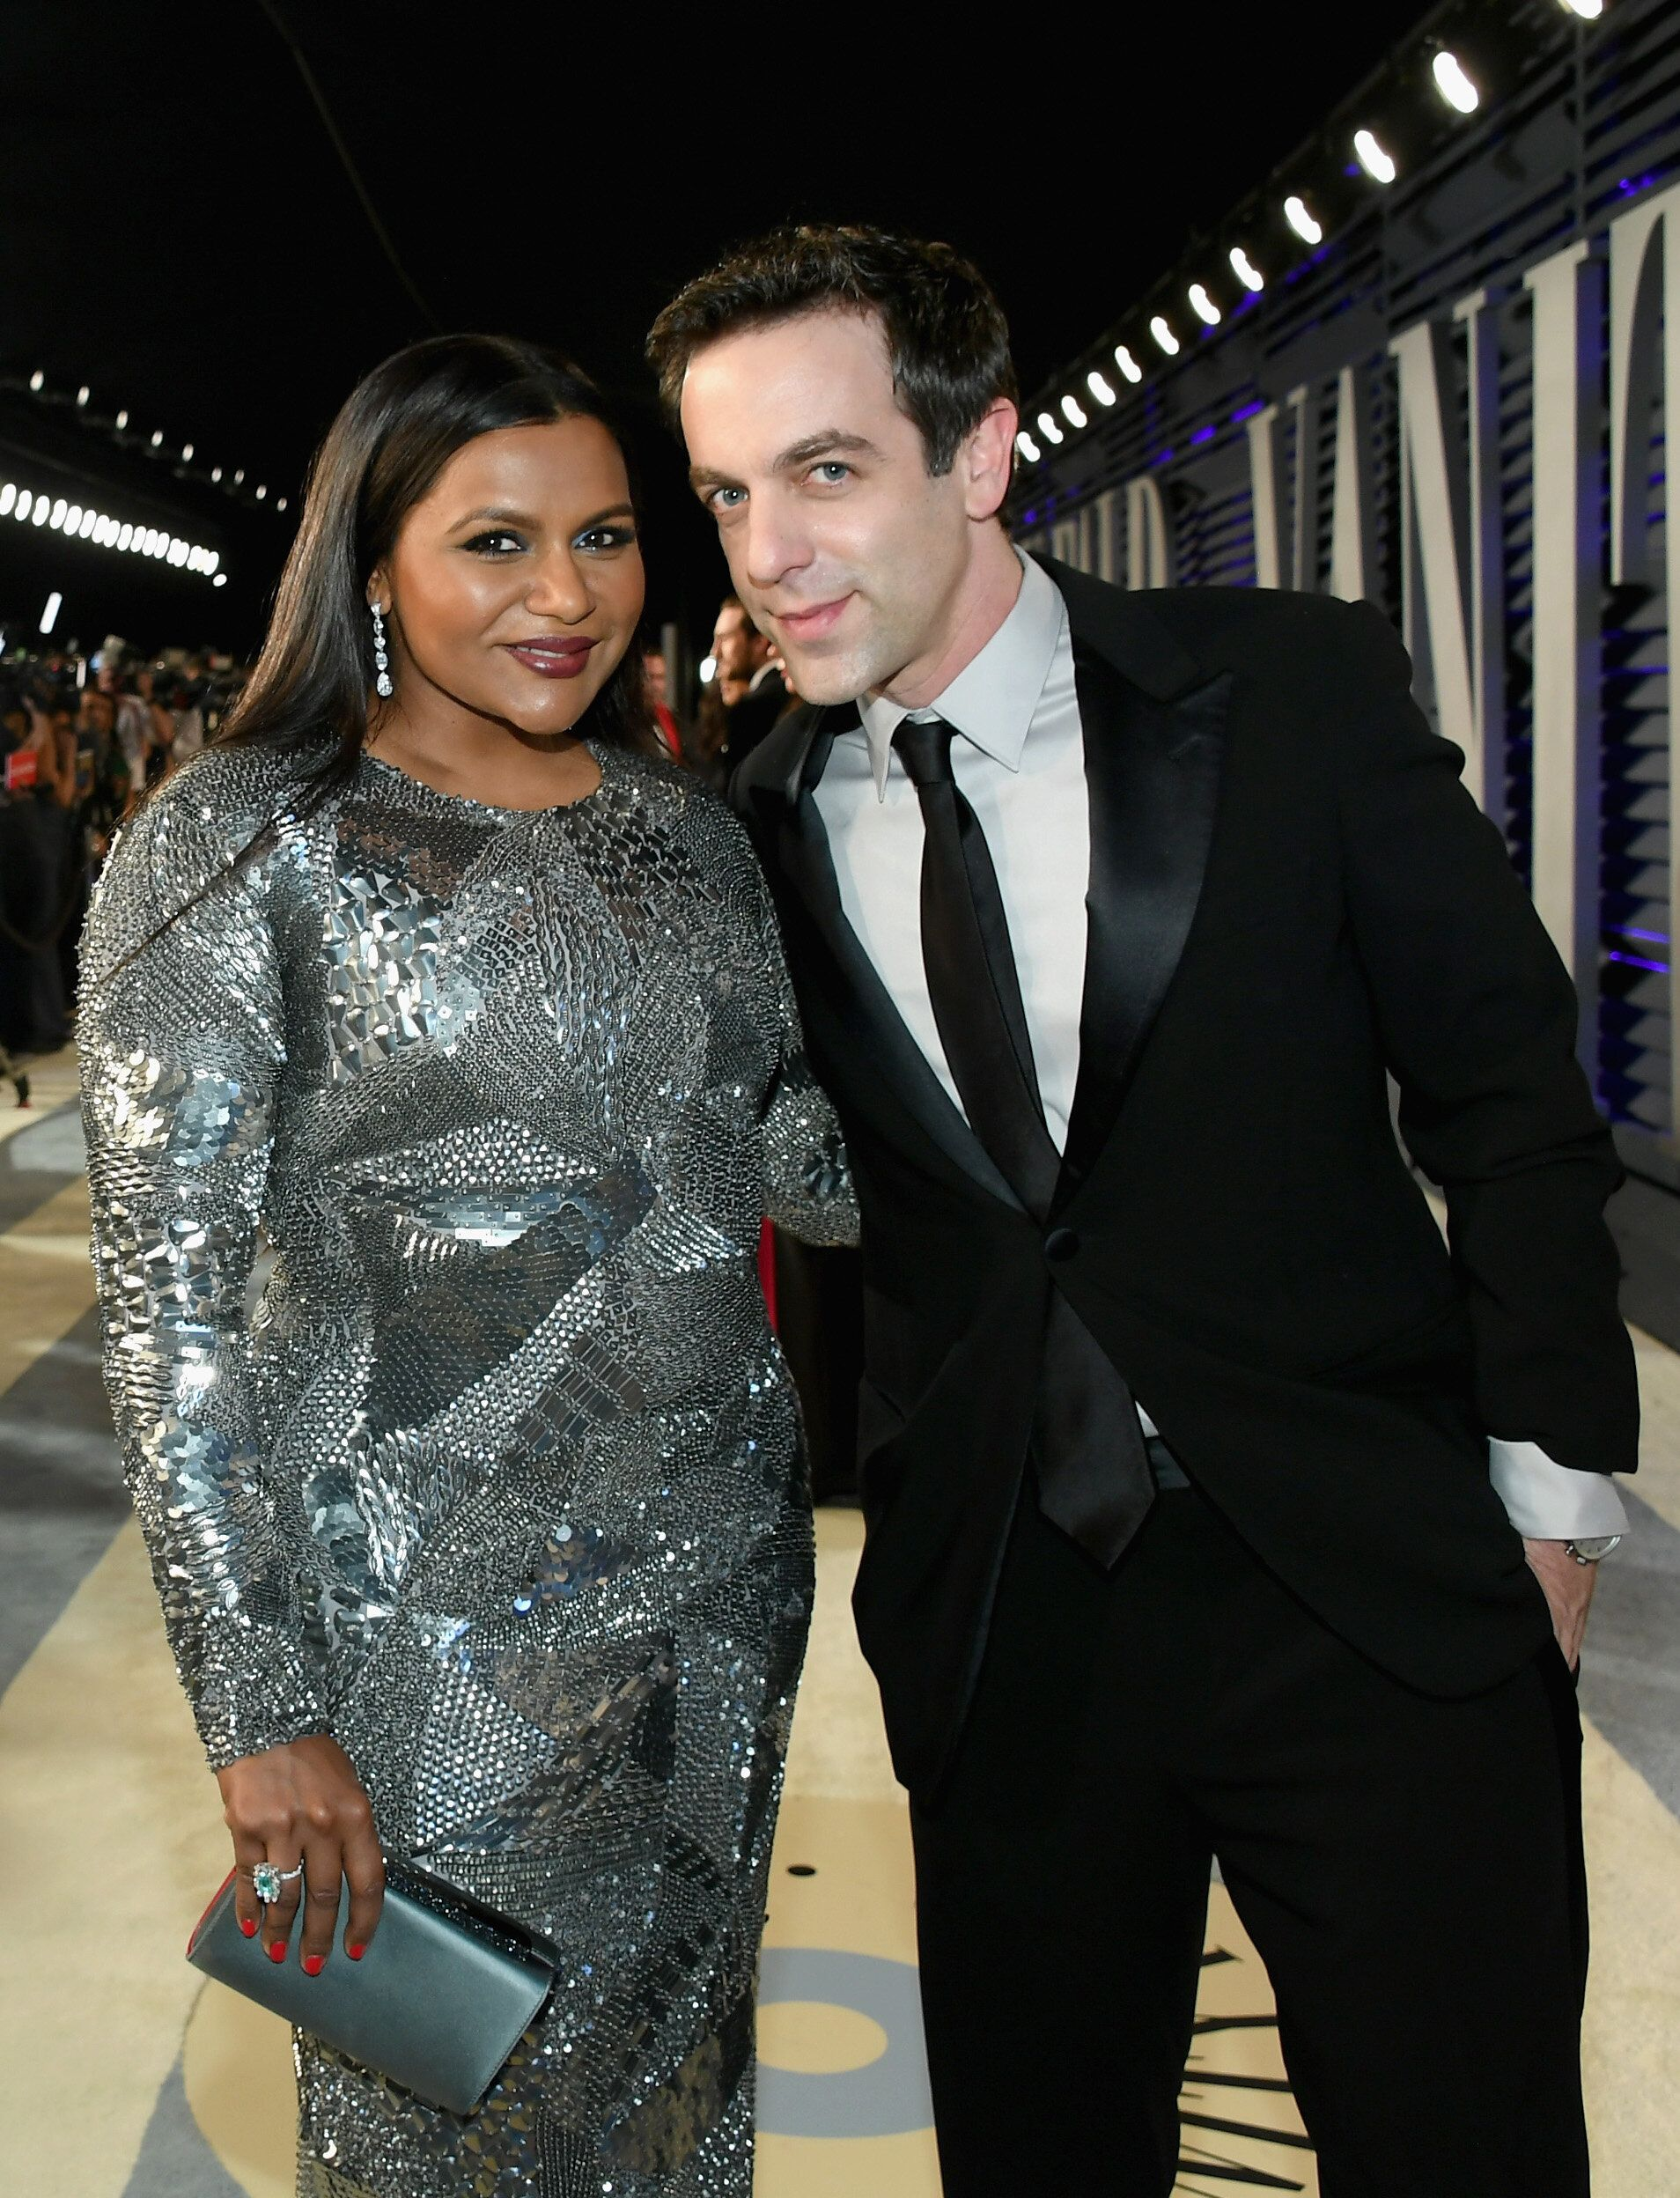 BEVERLY HILLS, CA - FEBRUARY 24:  Mindy Kaling (L) and B. J. Novak attend the 2019 Vanity Fair Oscar Party hosted by Radhika Jones at Wallis Annenberg Center for the Performing Arts on February 24, 2019 in Beverly Hills, California.  (Photo by Mike Coppola/VF19/Getty Images for VF)